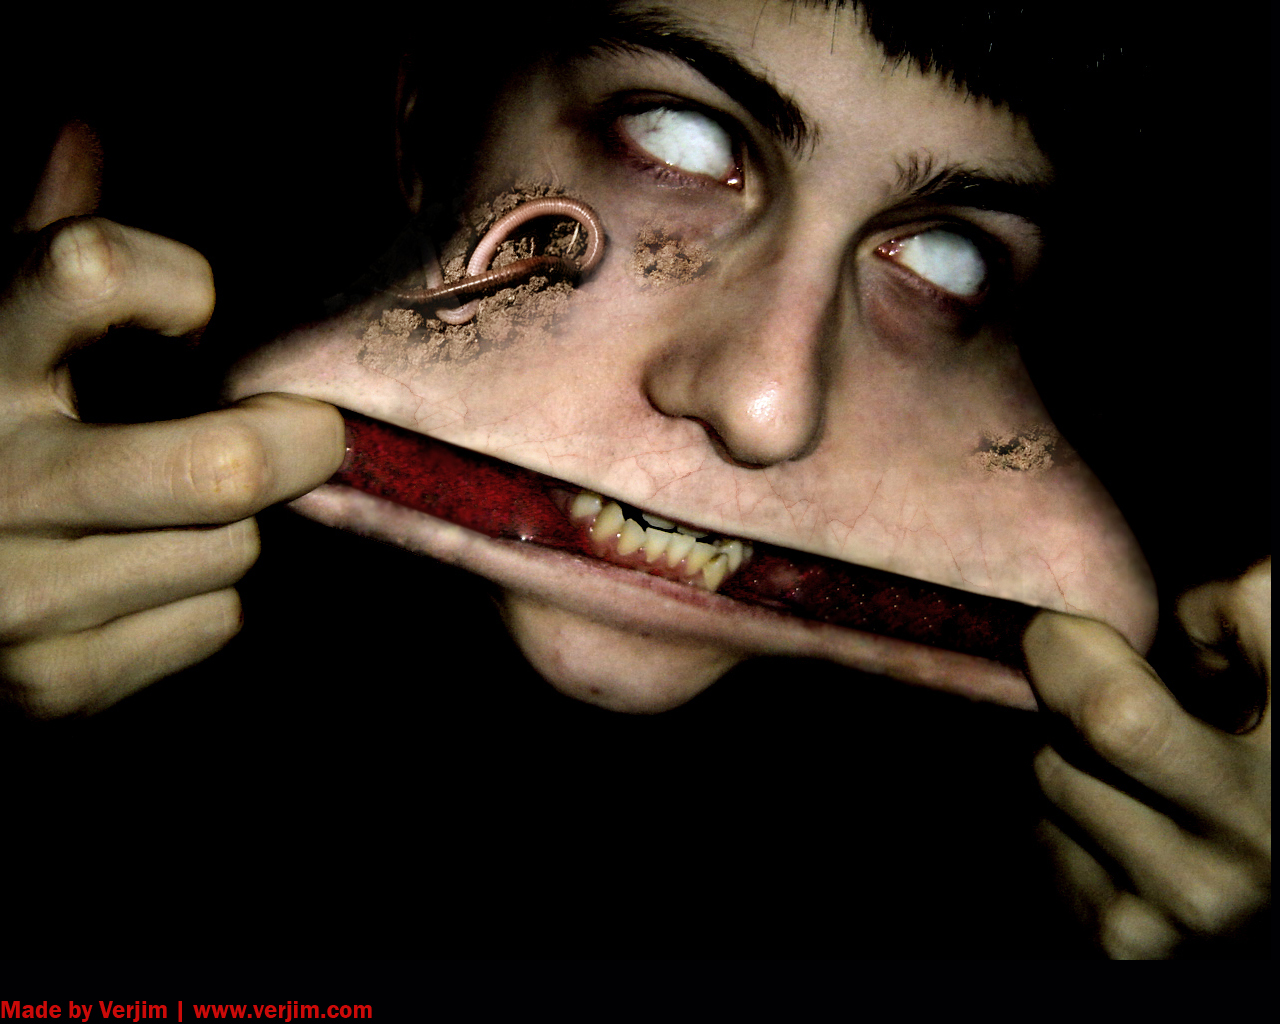 FREE HD PHOTO GALLERY Hd Horror Wallpapers 1280x1024